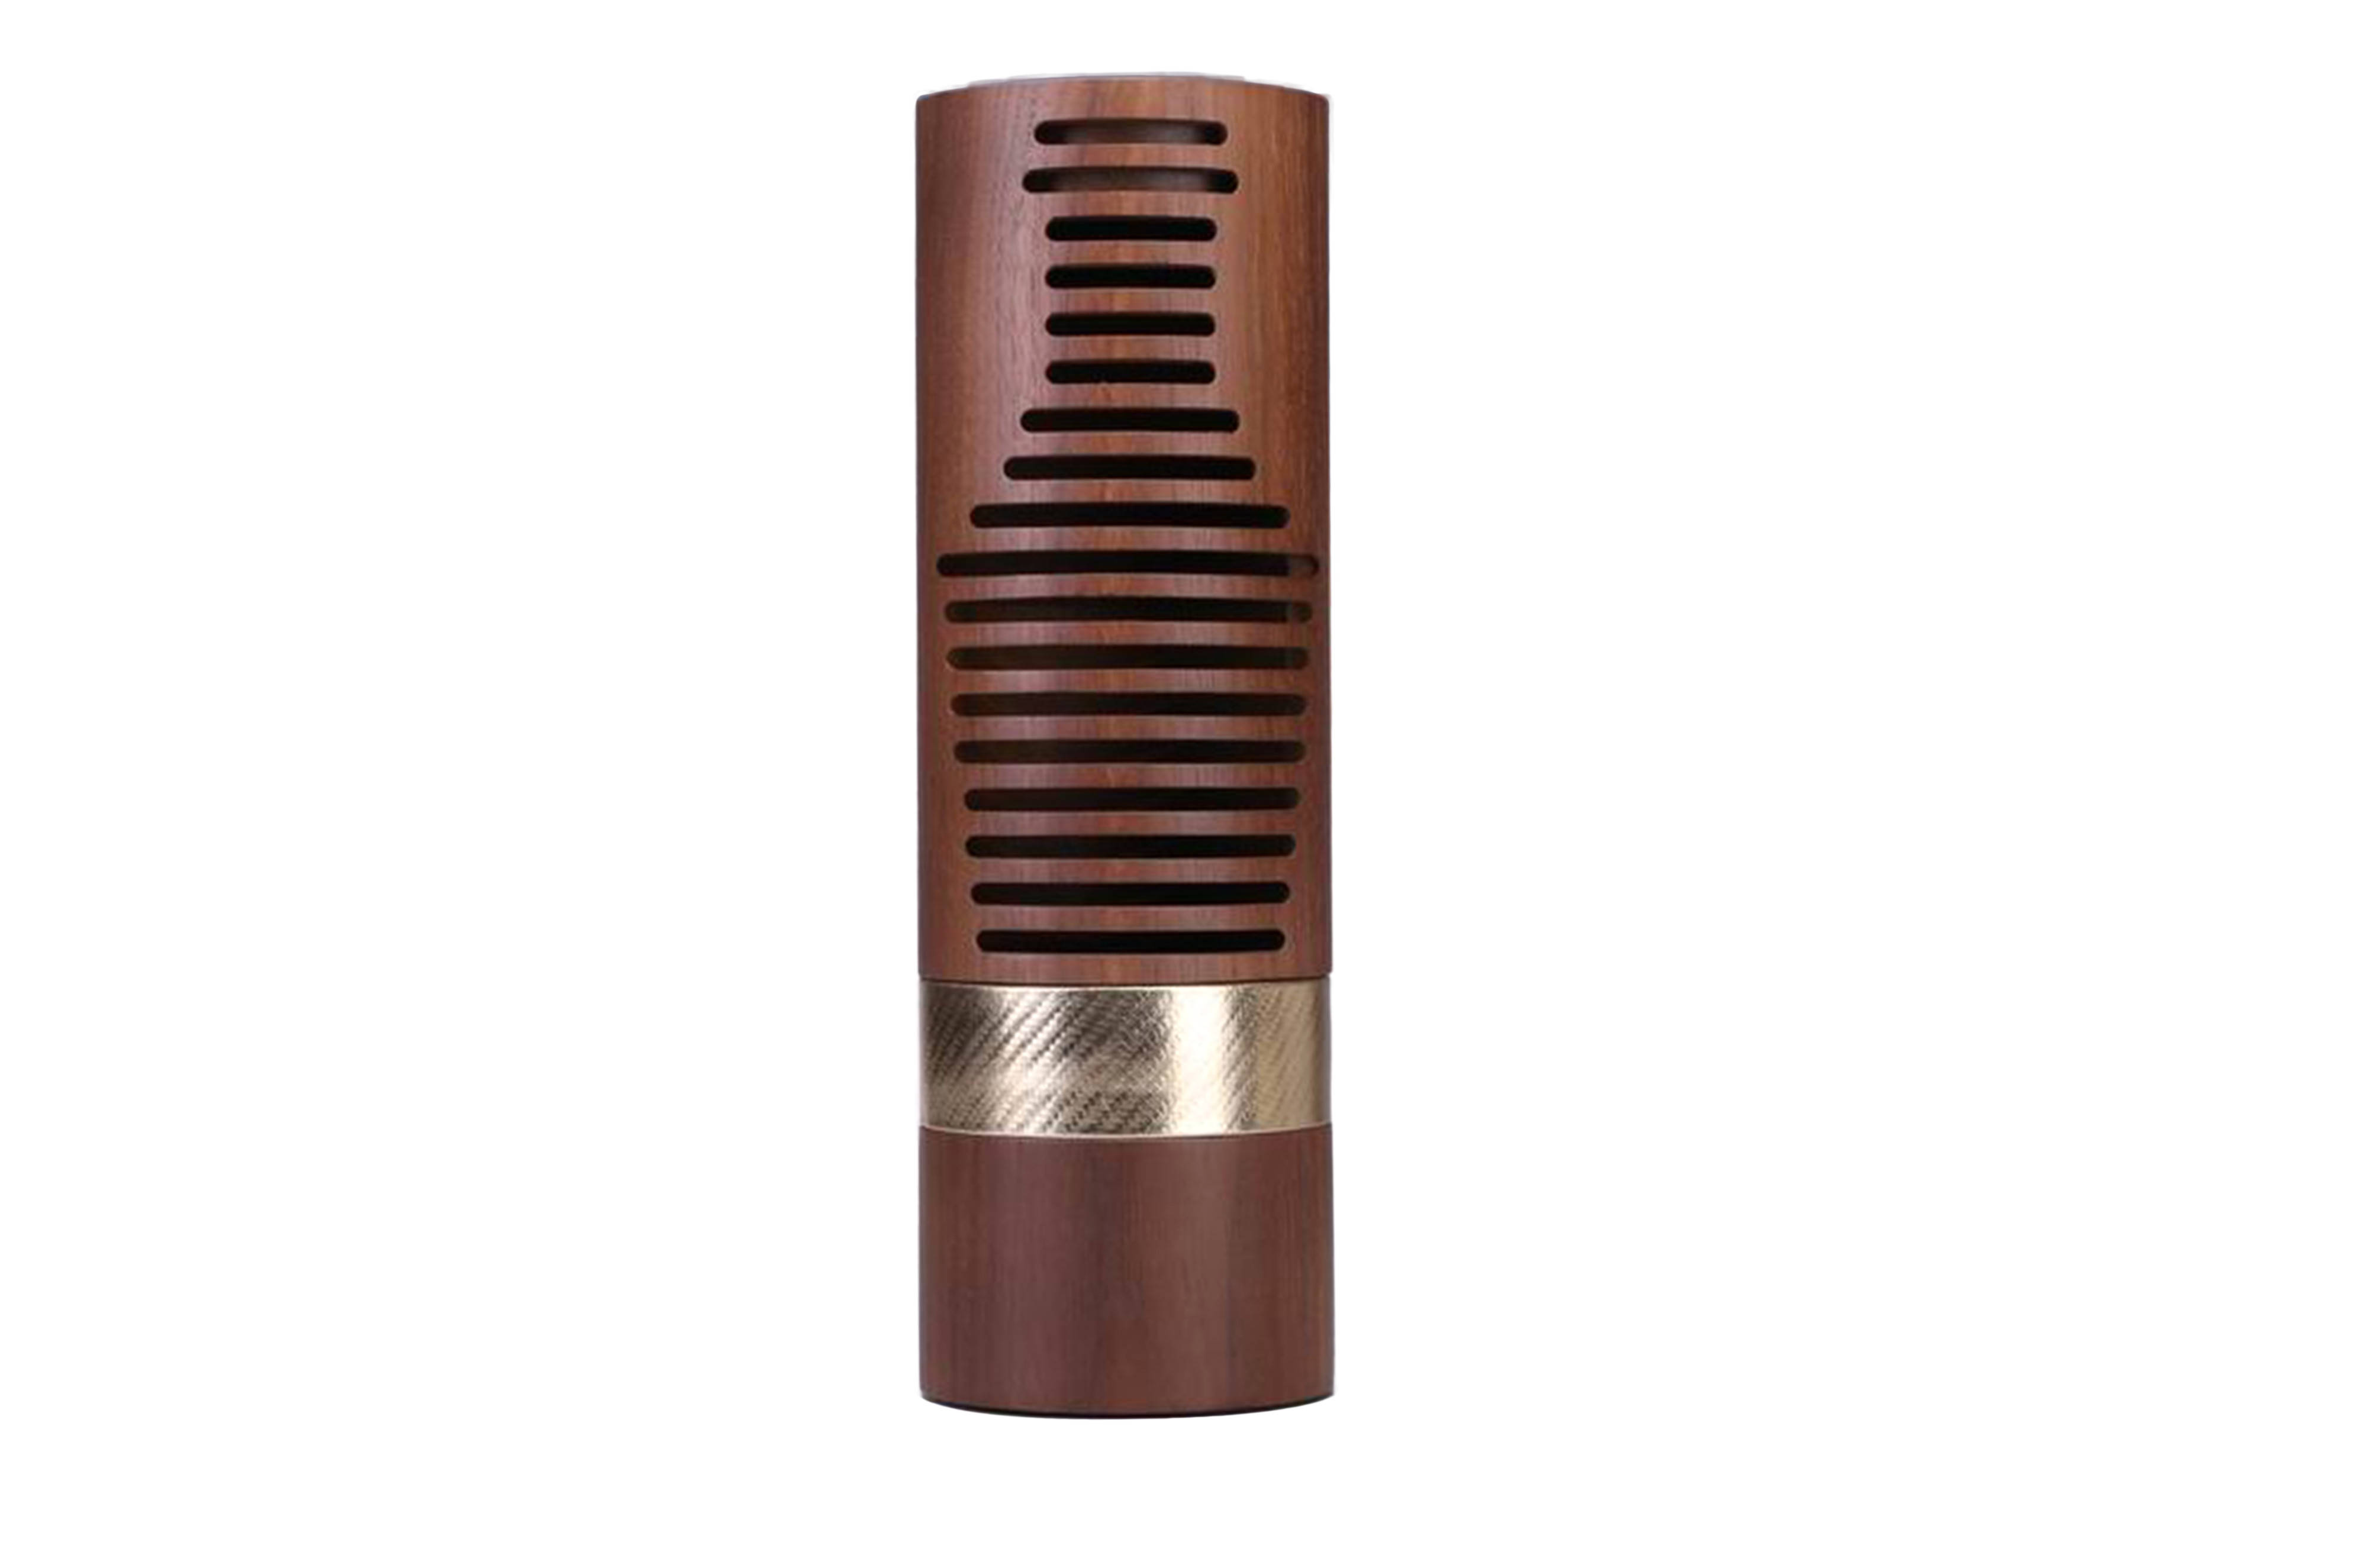 Cylindrical NC Flat Lacquered Black Walnut Solid Wooden Packaging and Wine Gift Box